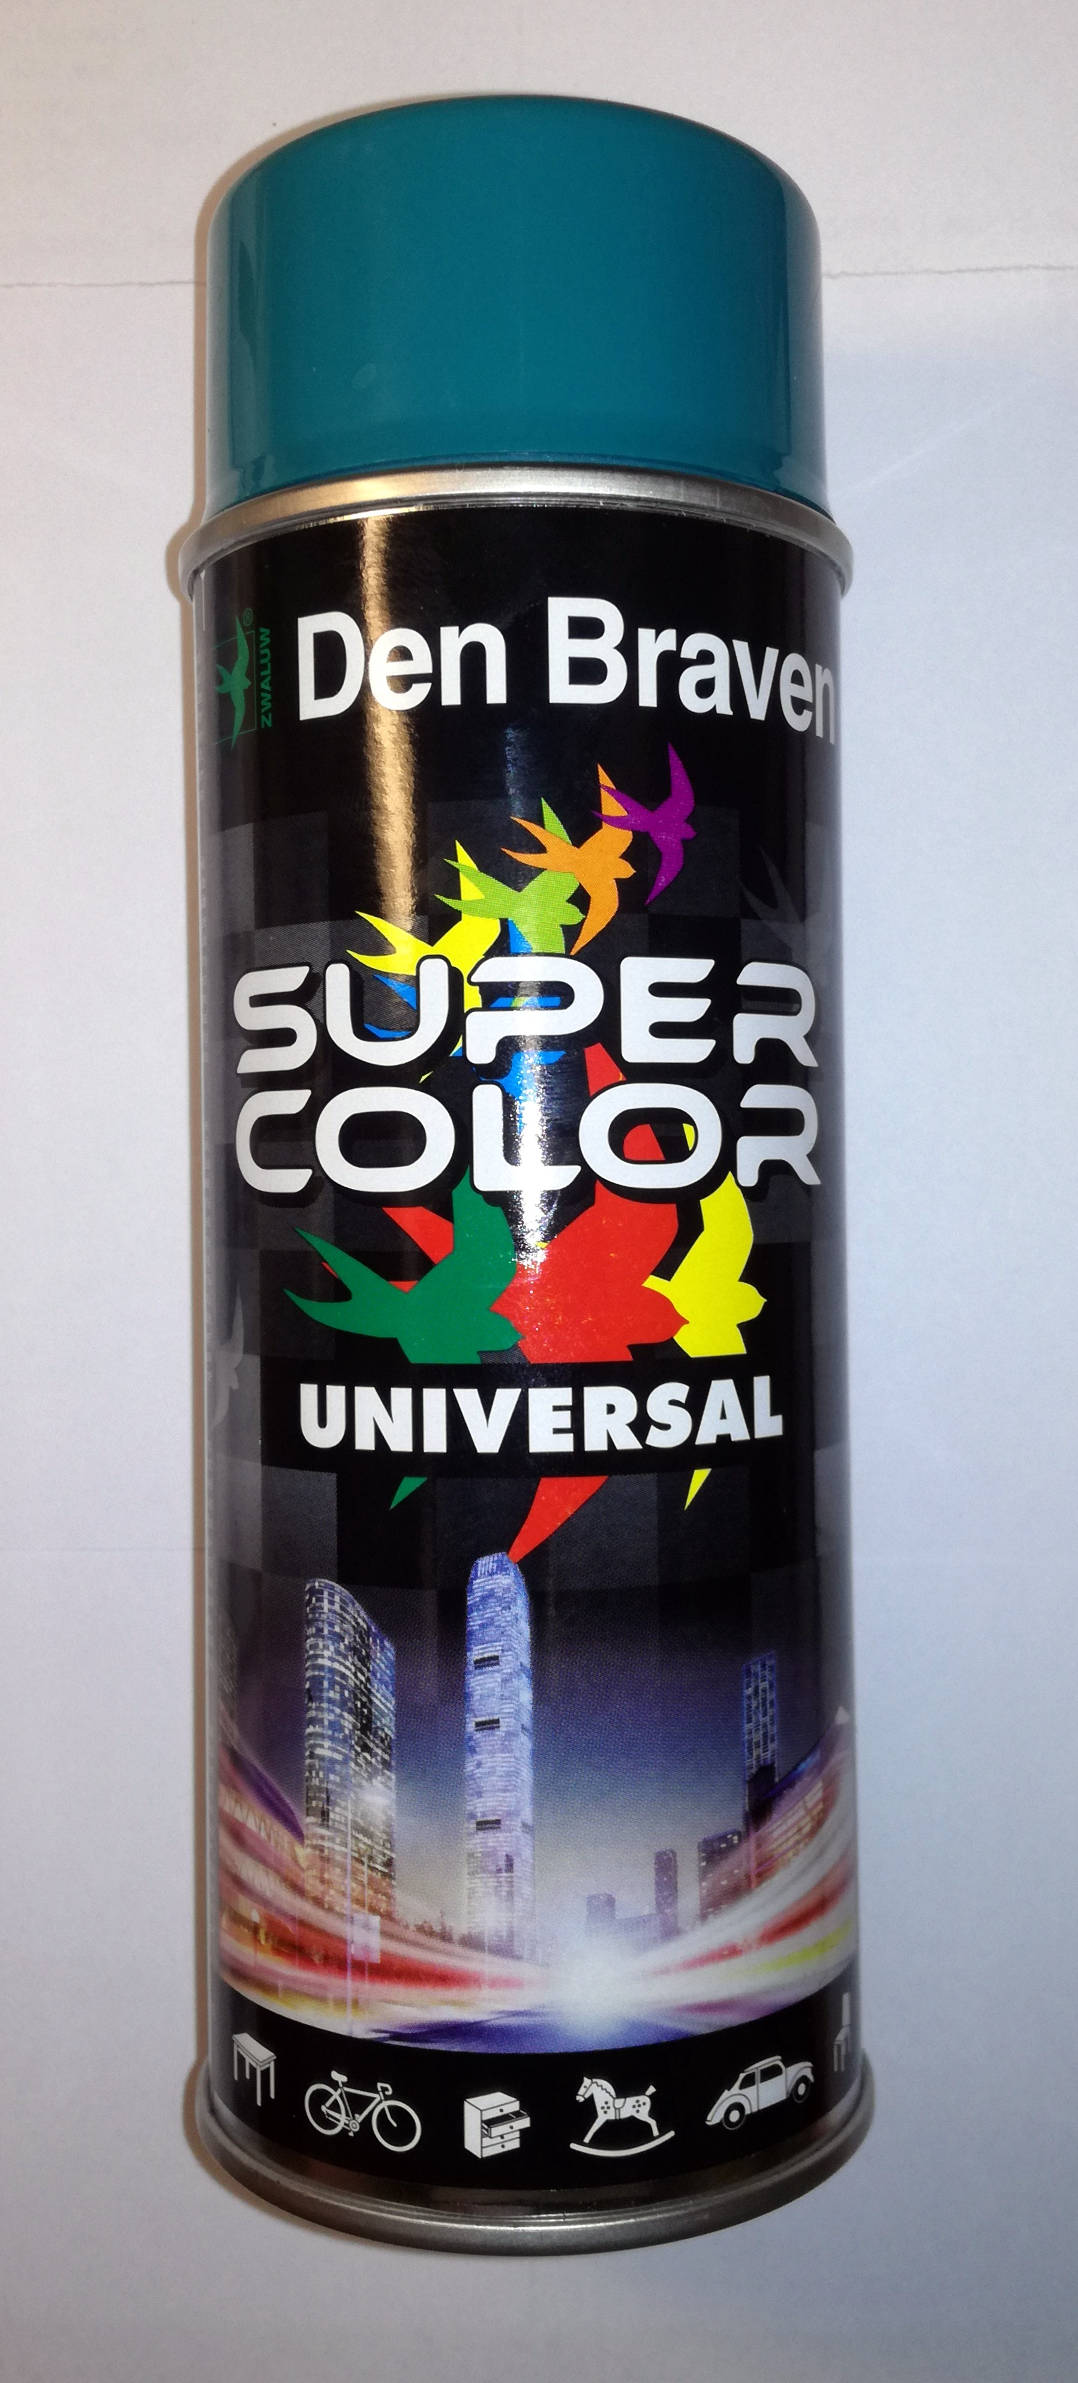 Lakier w sprayu turkusowy Super Color DenBraven 400ml